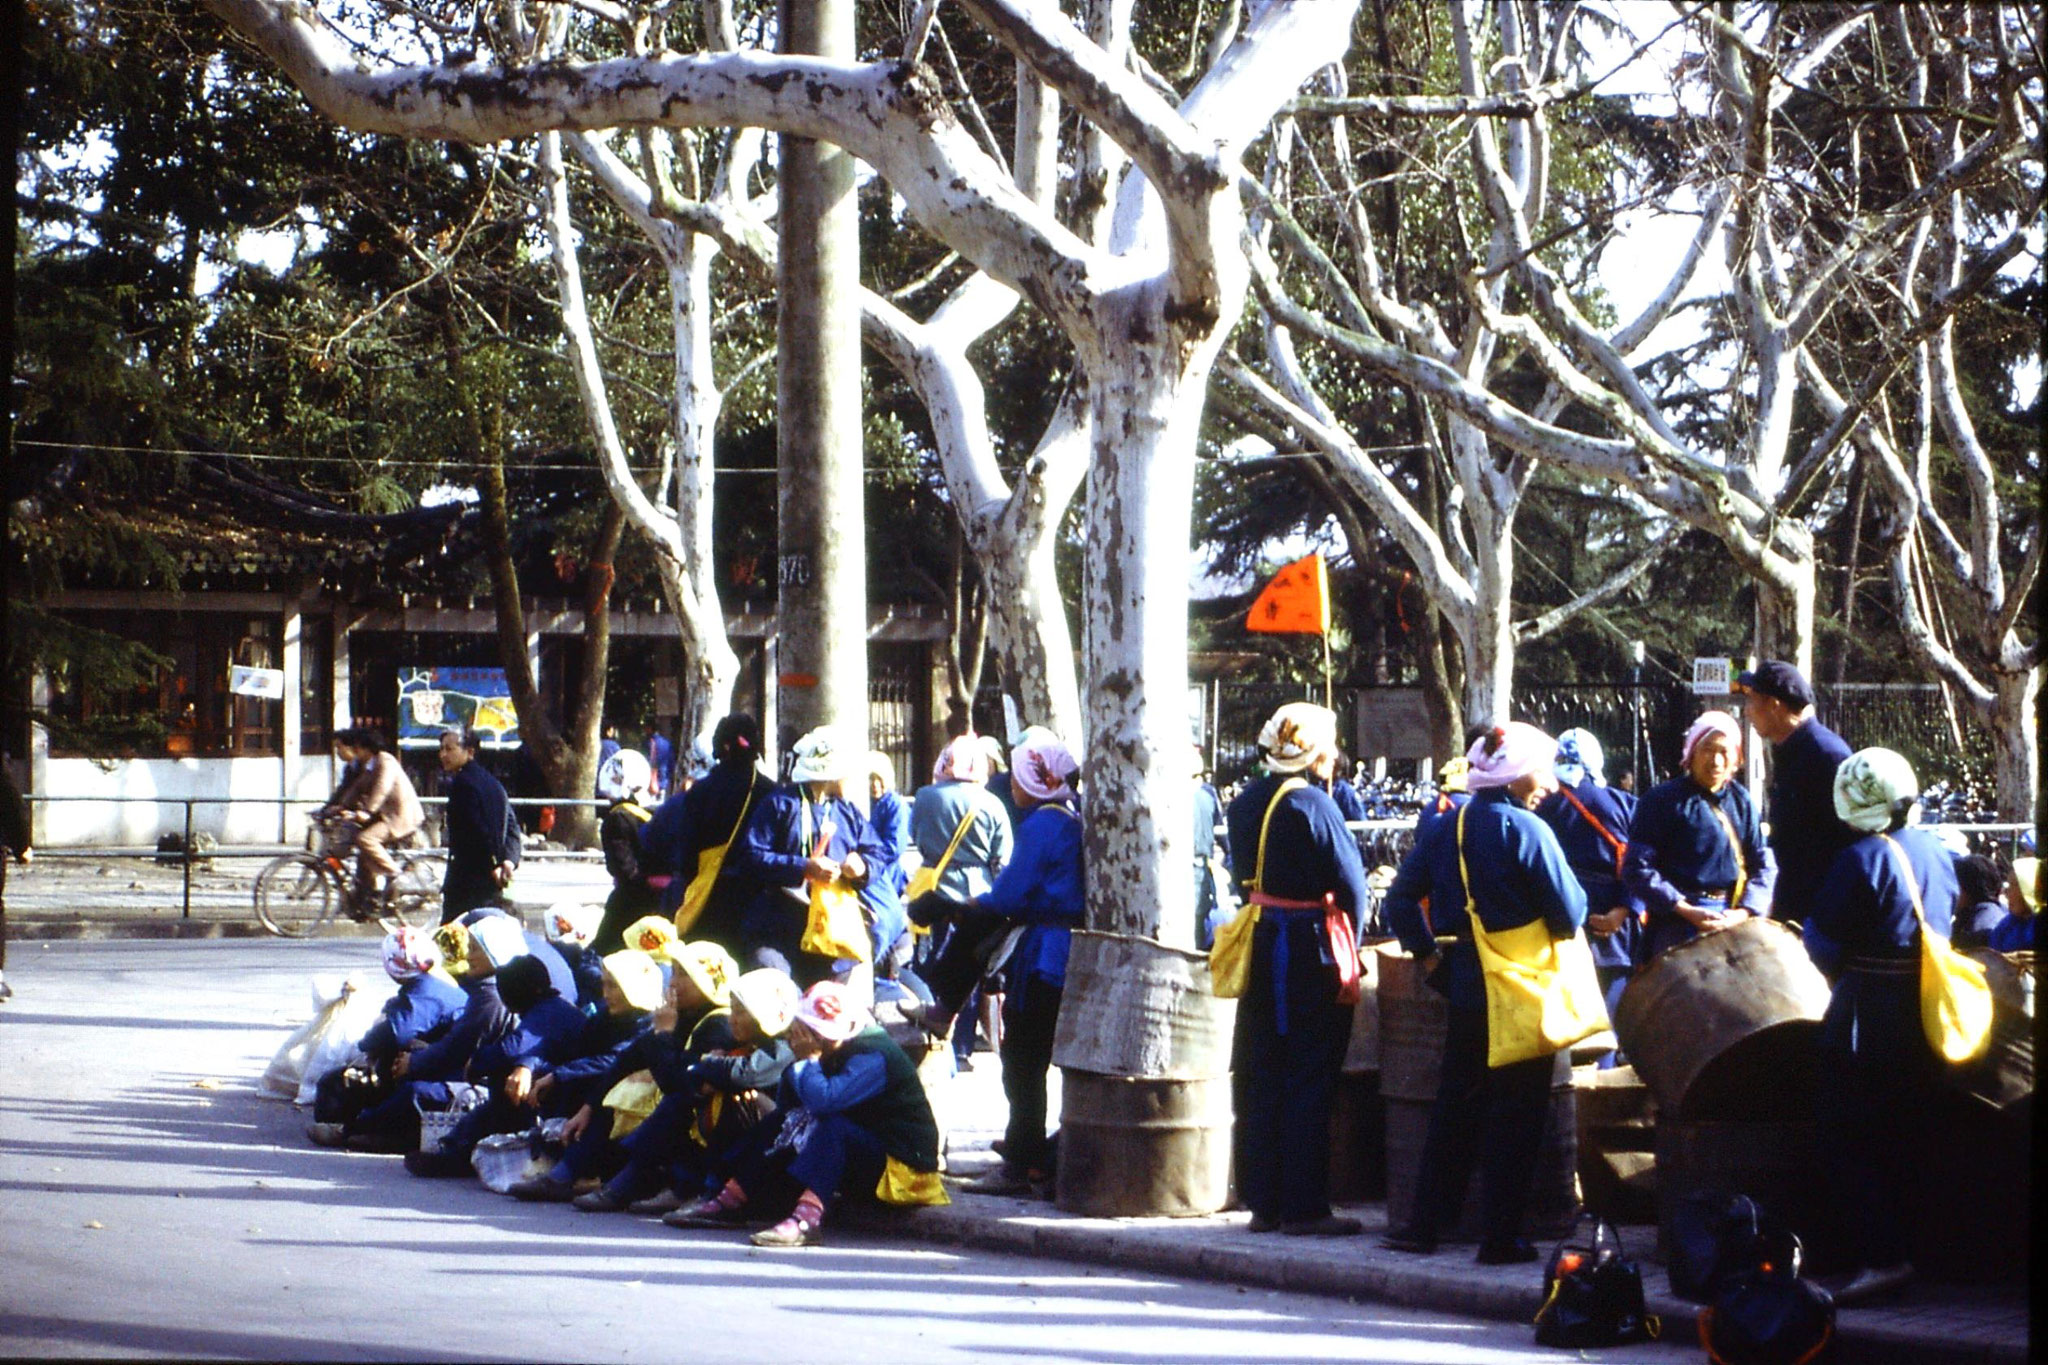 27/3/1989: 1: Hangzhou Ling Si temple pilgrims resting